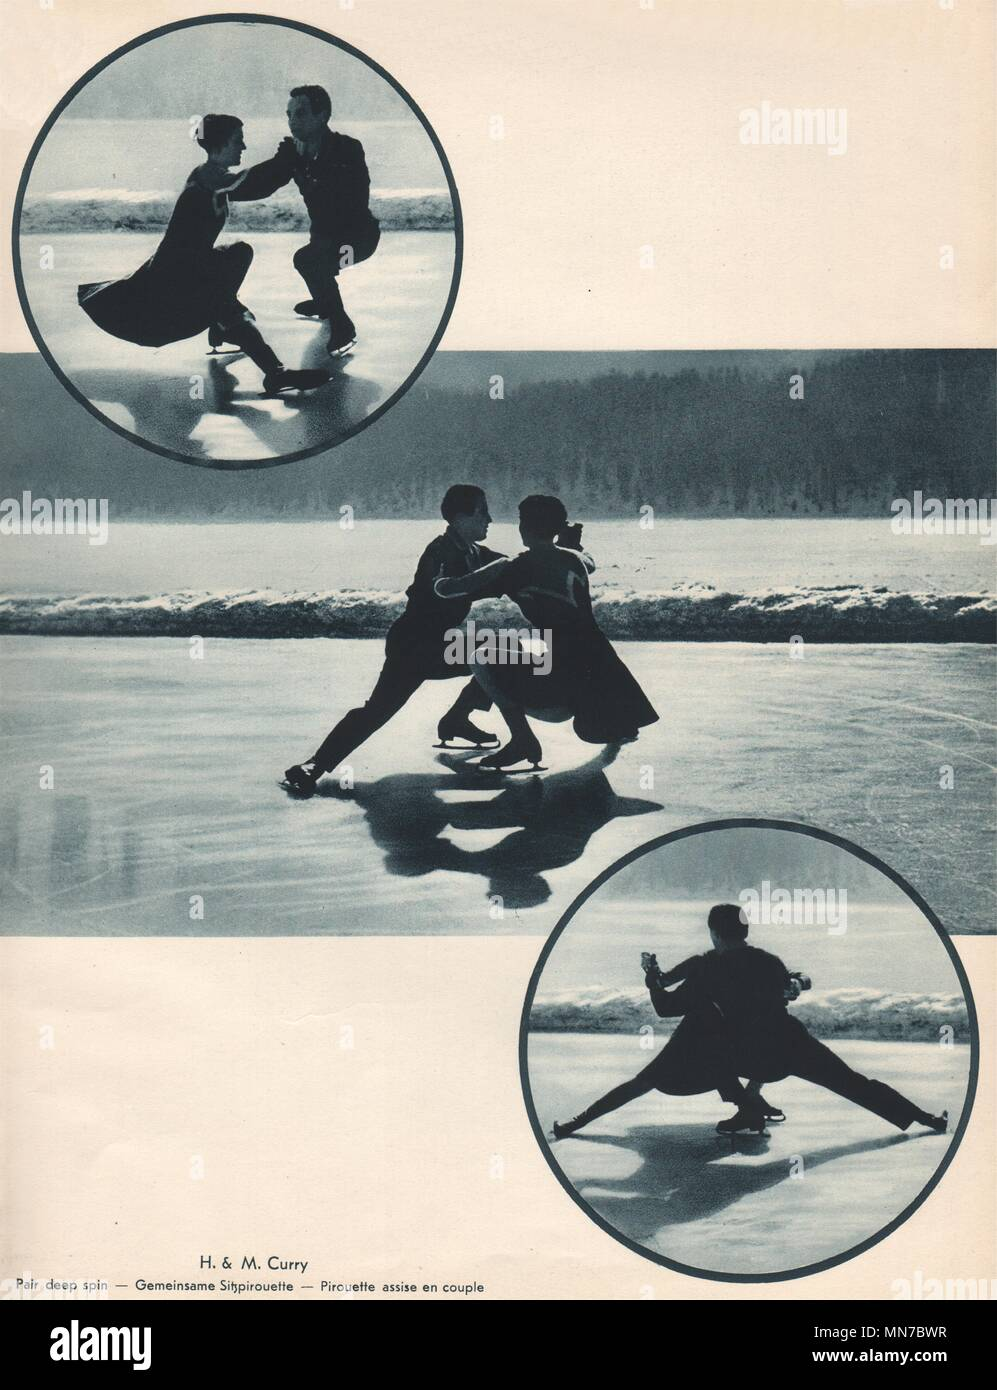 ICE FIGURE SKATING. H. & M. Curry - Pair deep spin 1935 old vintage print - Stock Image